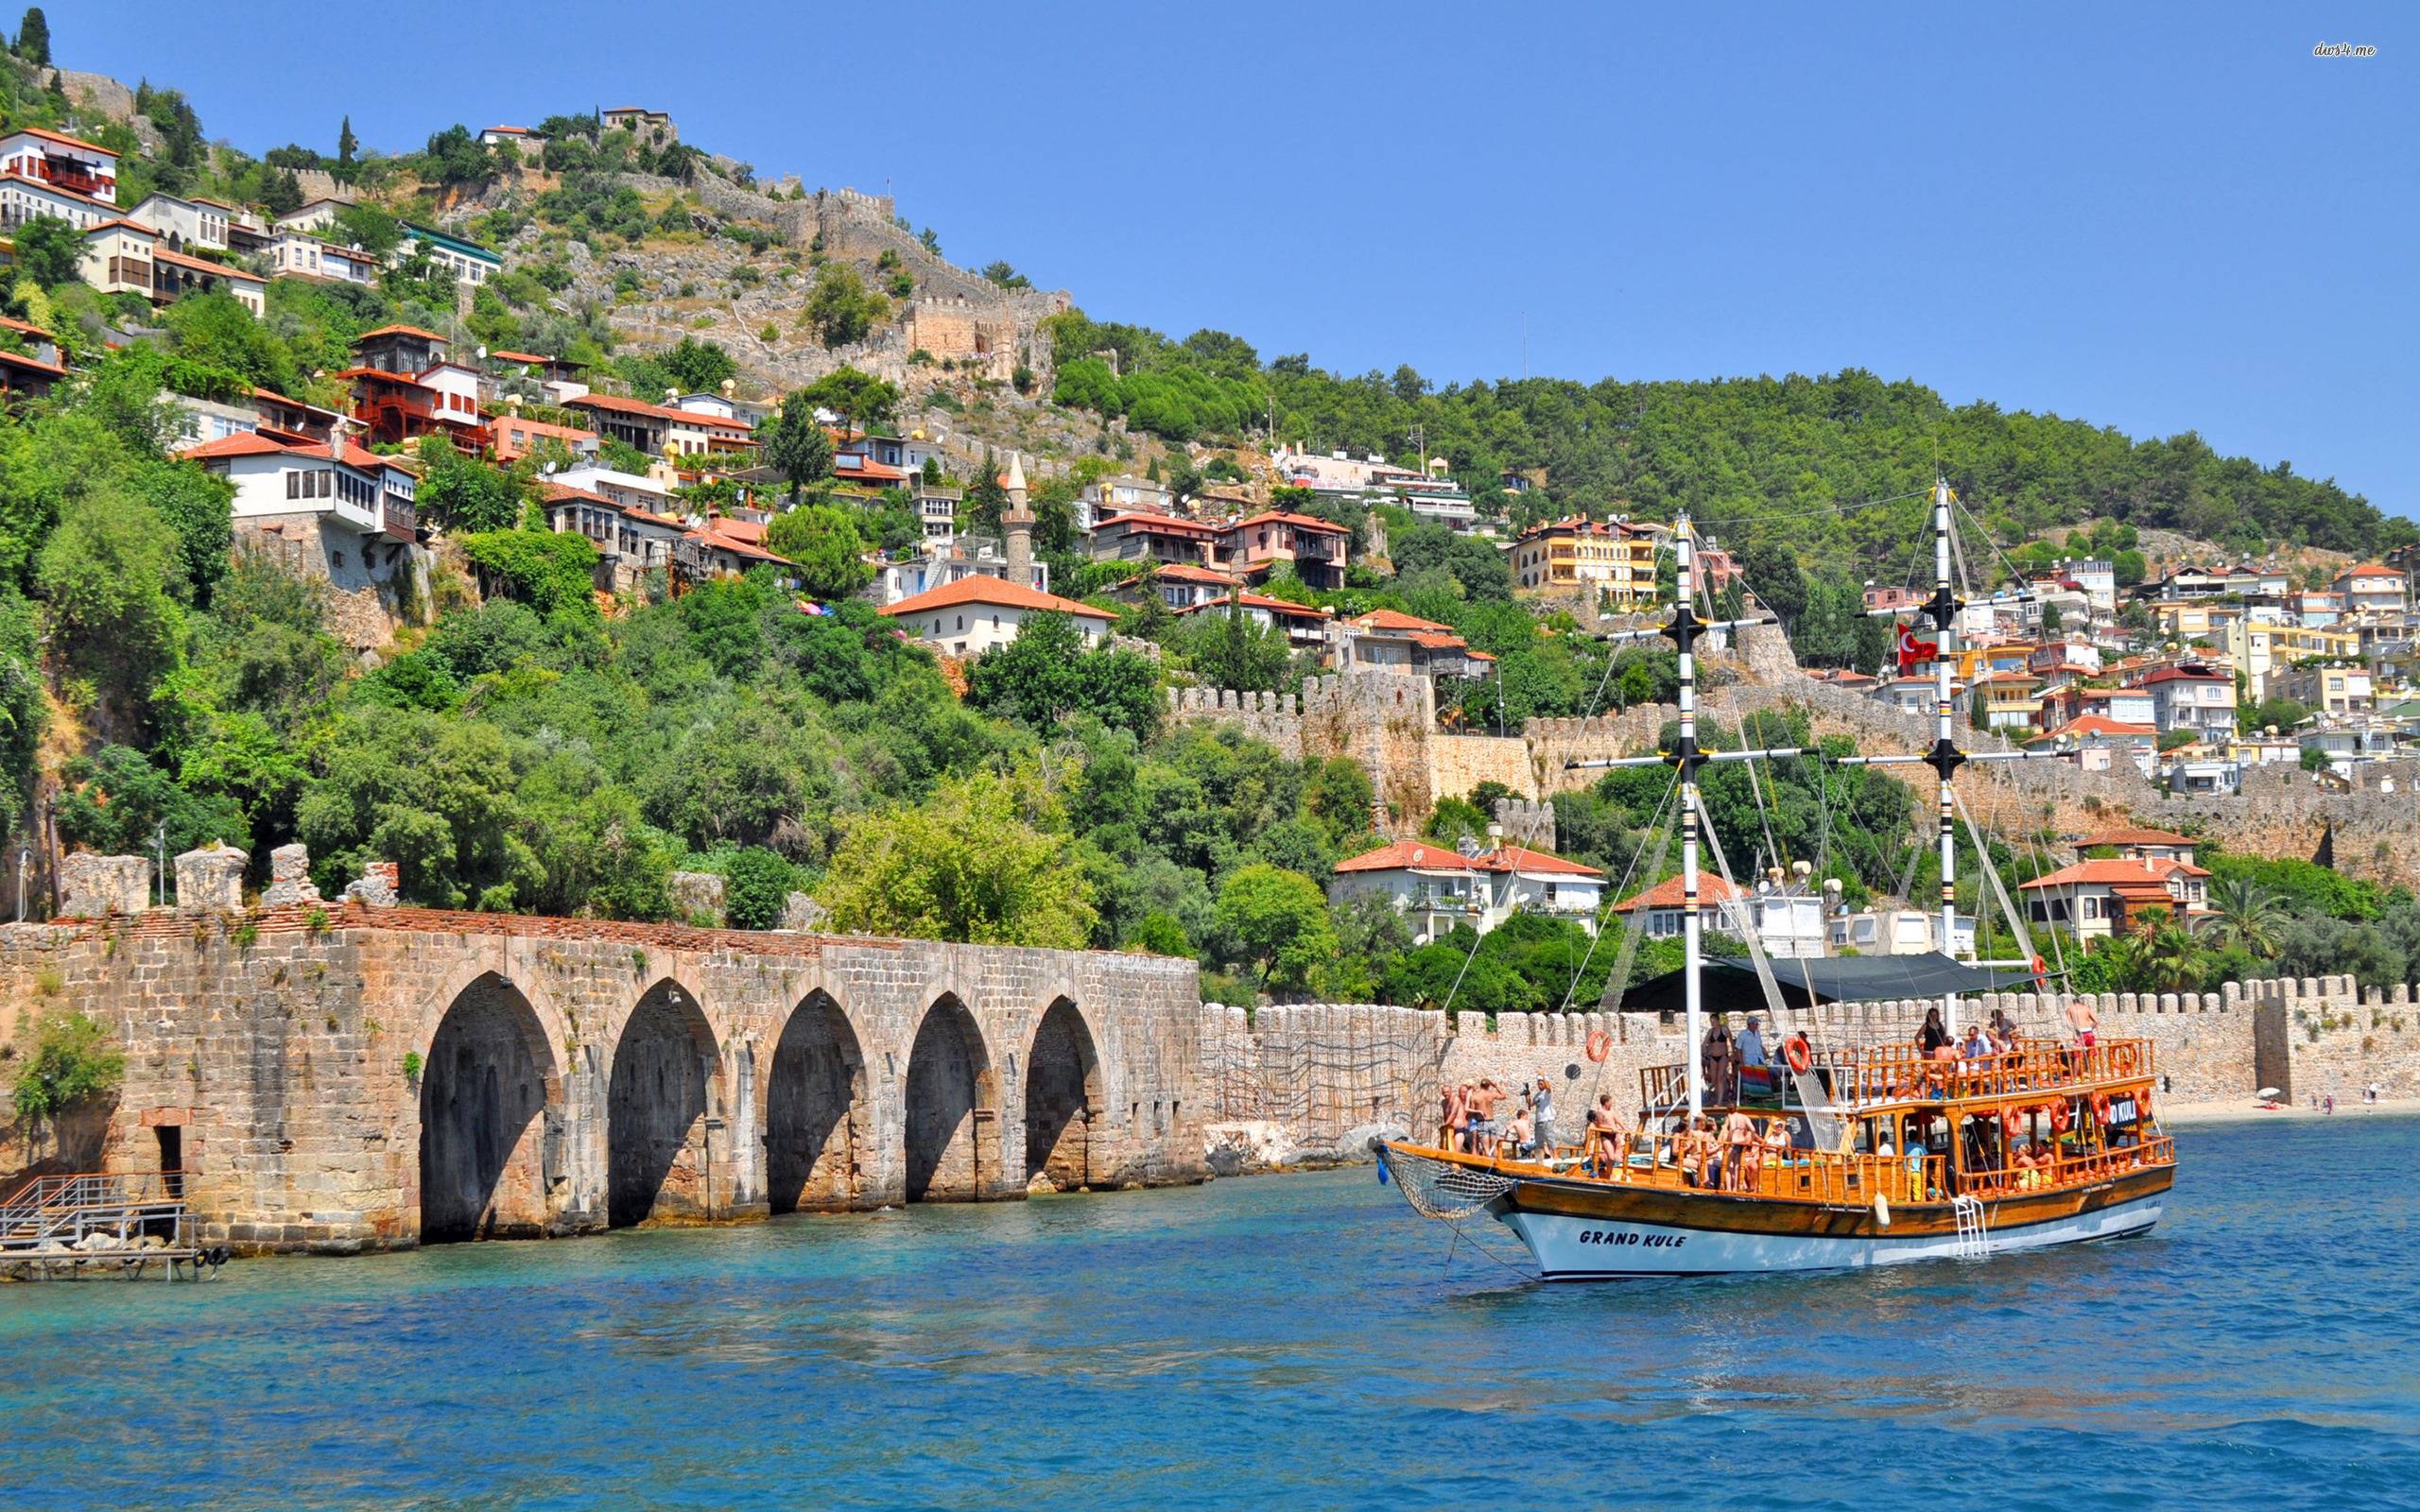 34625-alanya-2560×1600-world-wallpaper